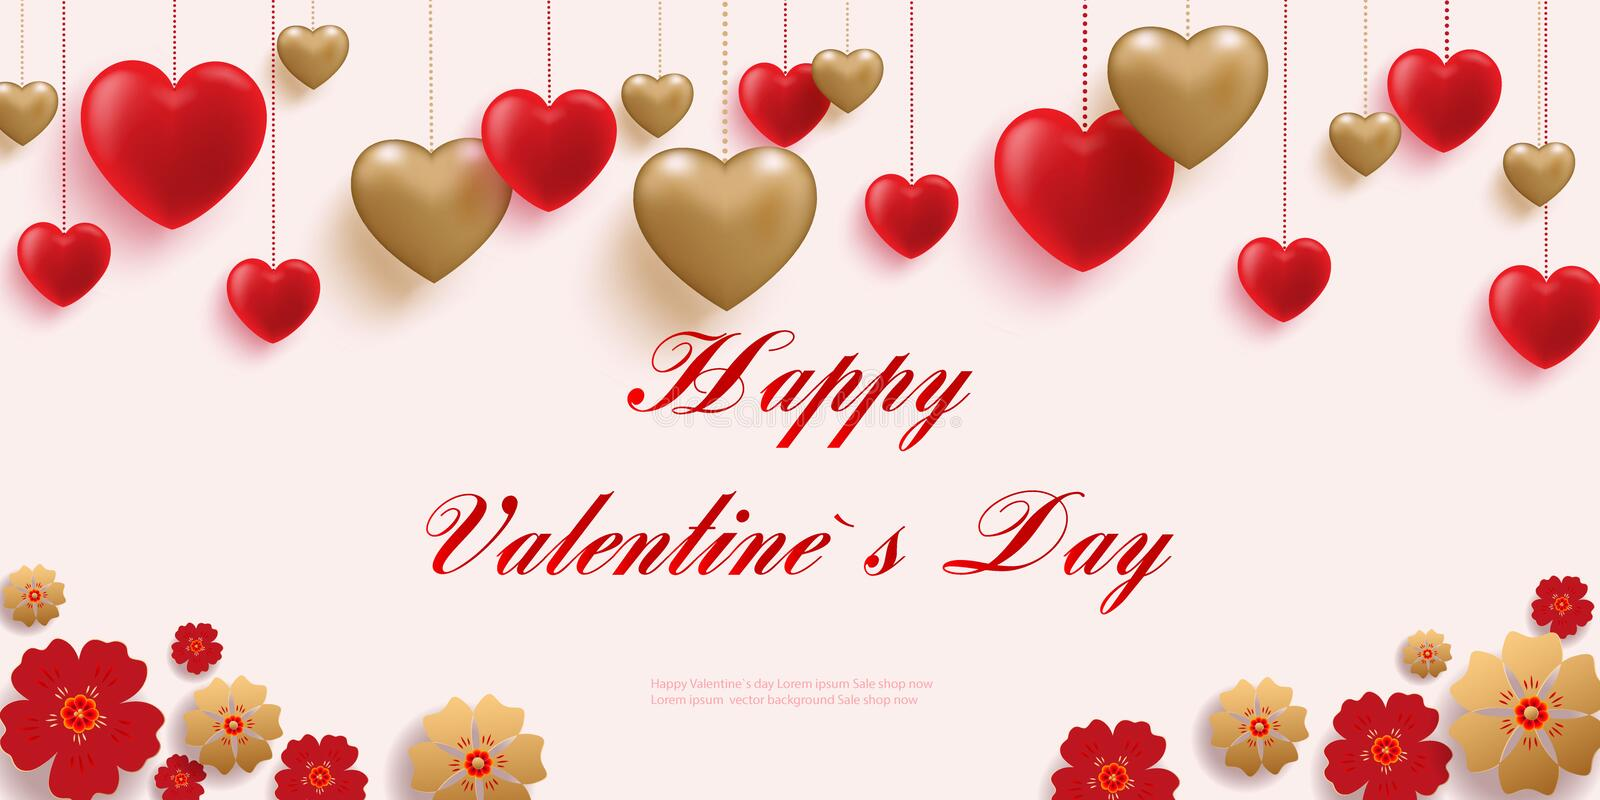 Happy Valentine s Day.Poster of valentine day in modern style. Happy saint valentine`s day background with decoration vector illustration